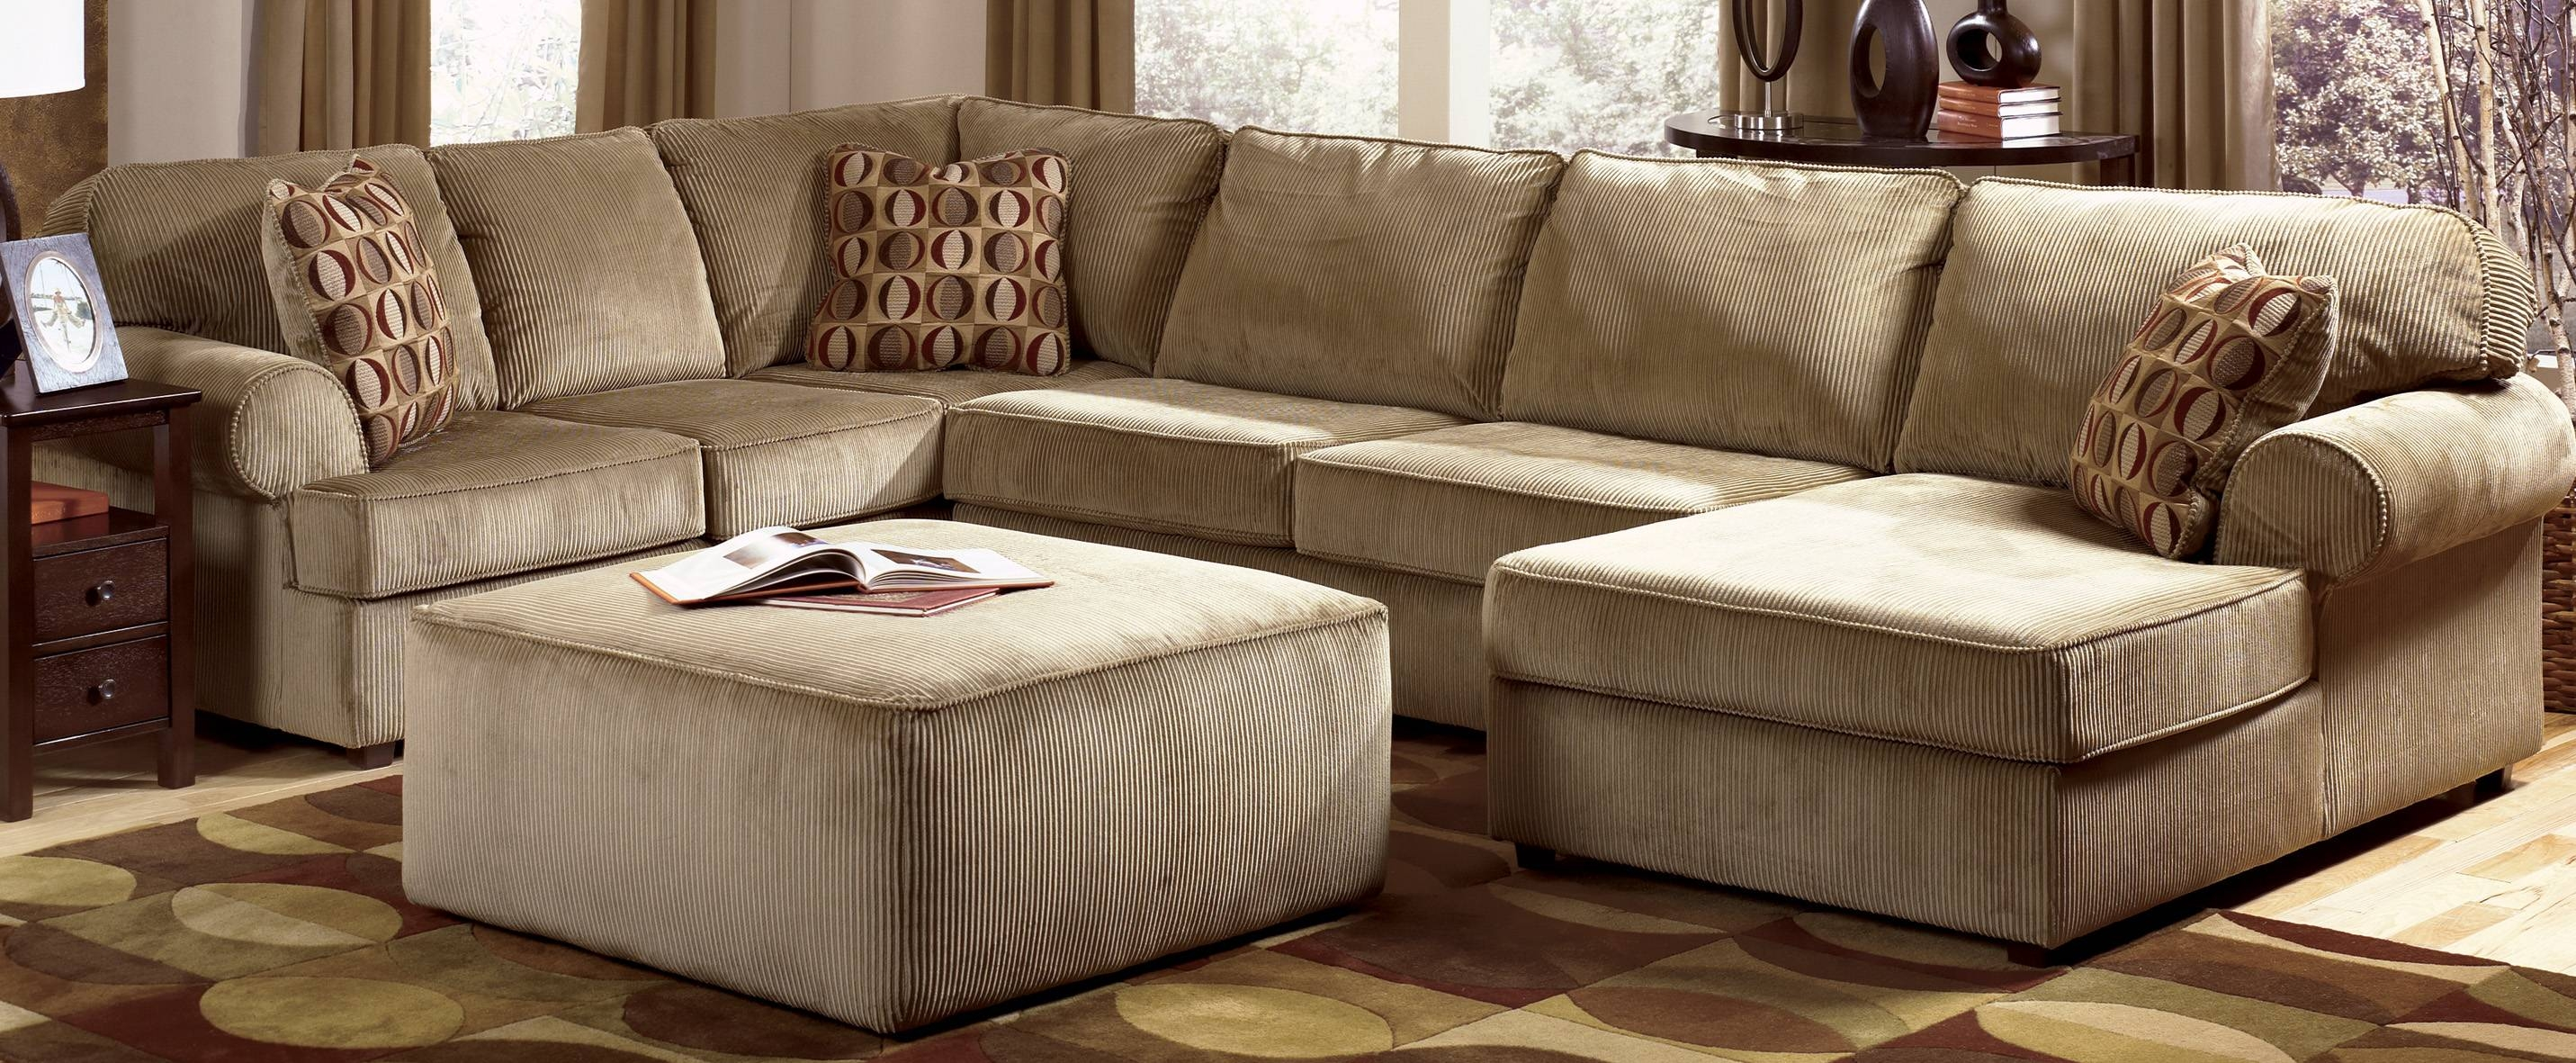 Latest Trend Of Low Price Sectional Sofas 52 For Home Theatre pertaining to Theatre Sectional Sofas (Image 17 of 30)